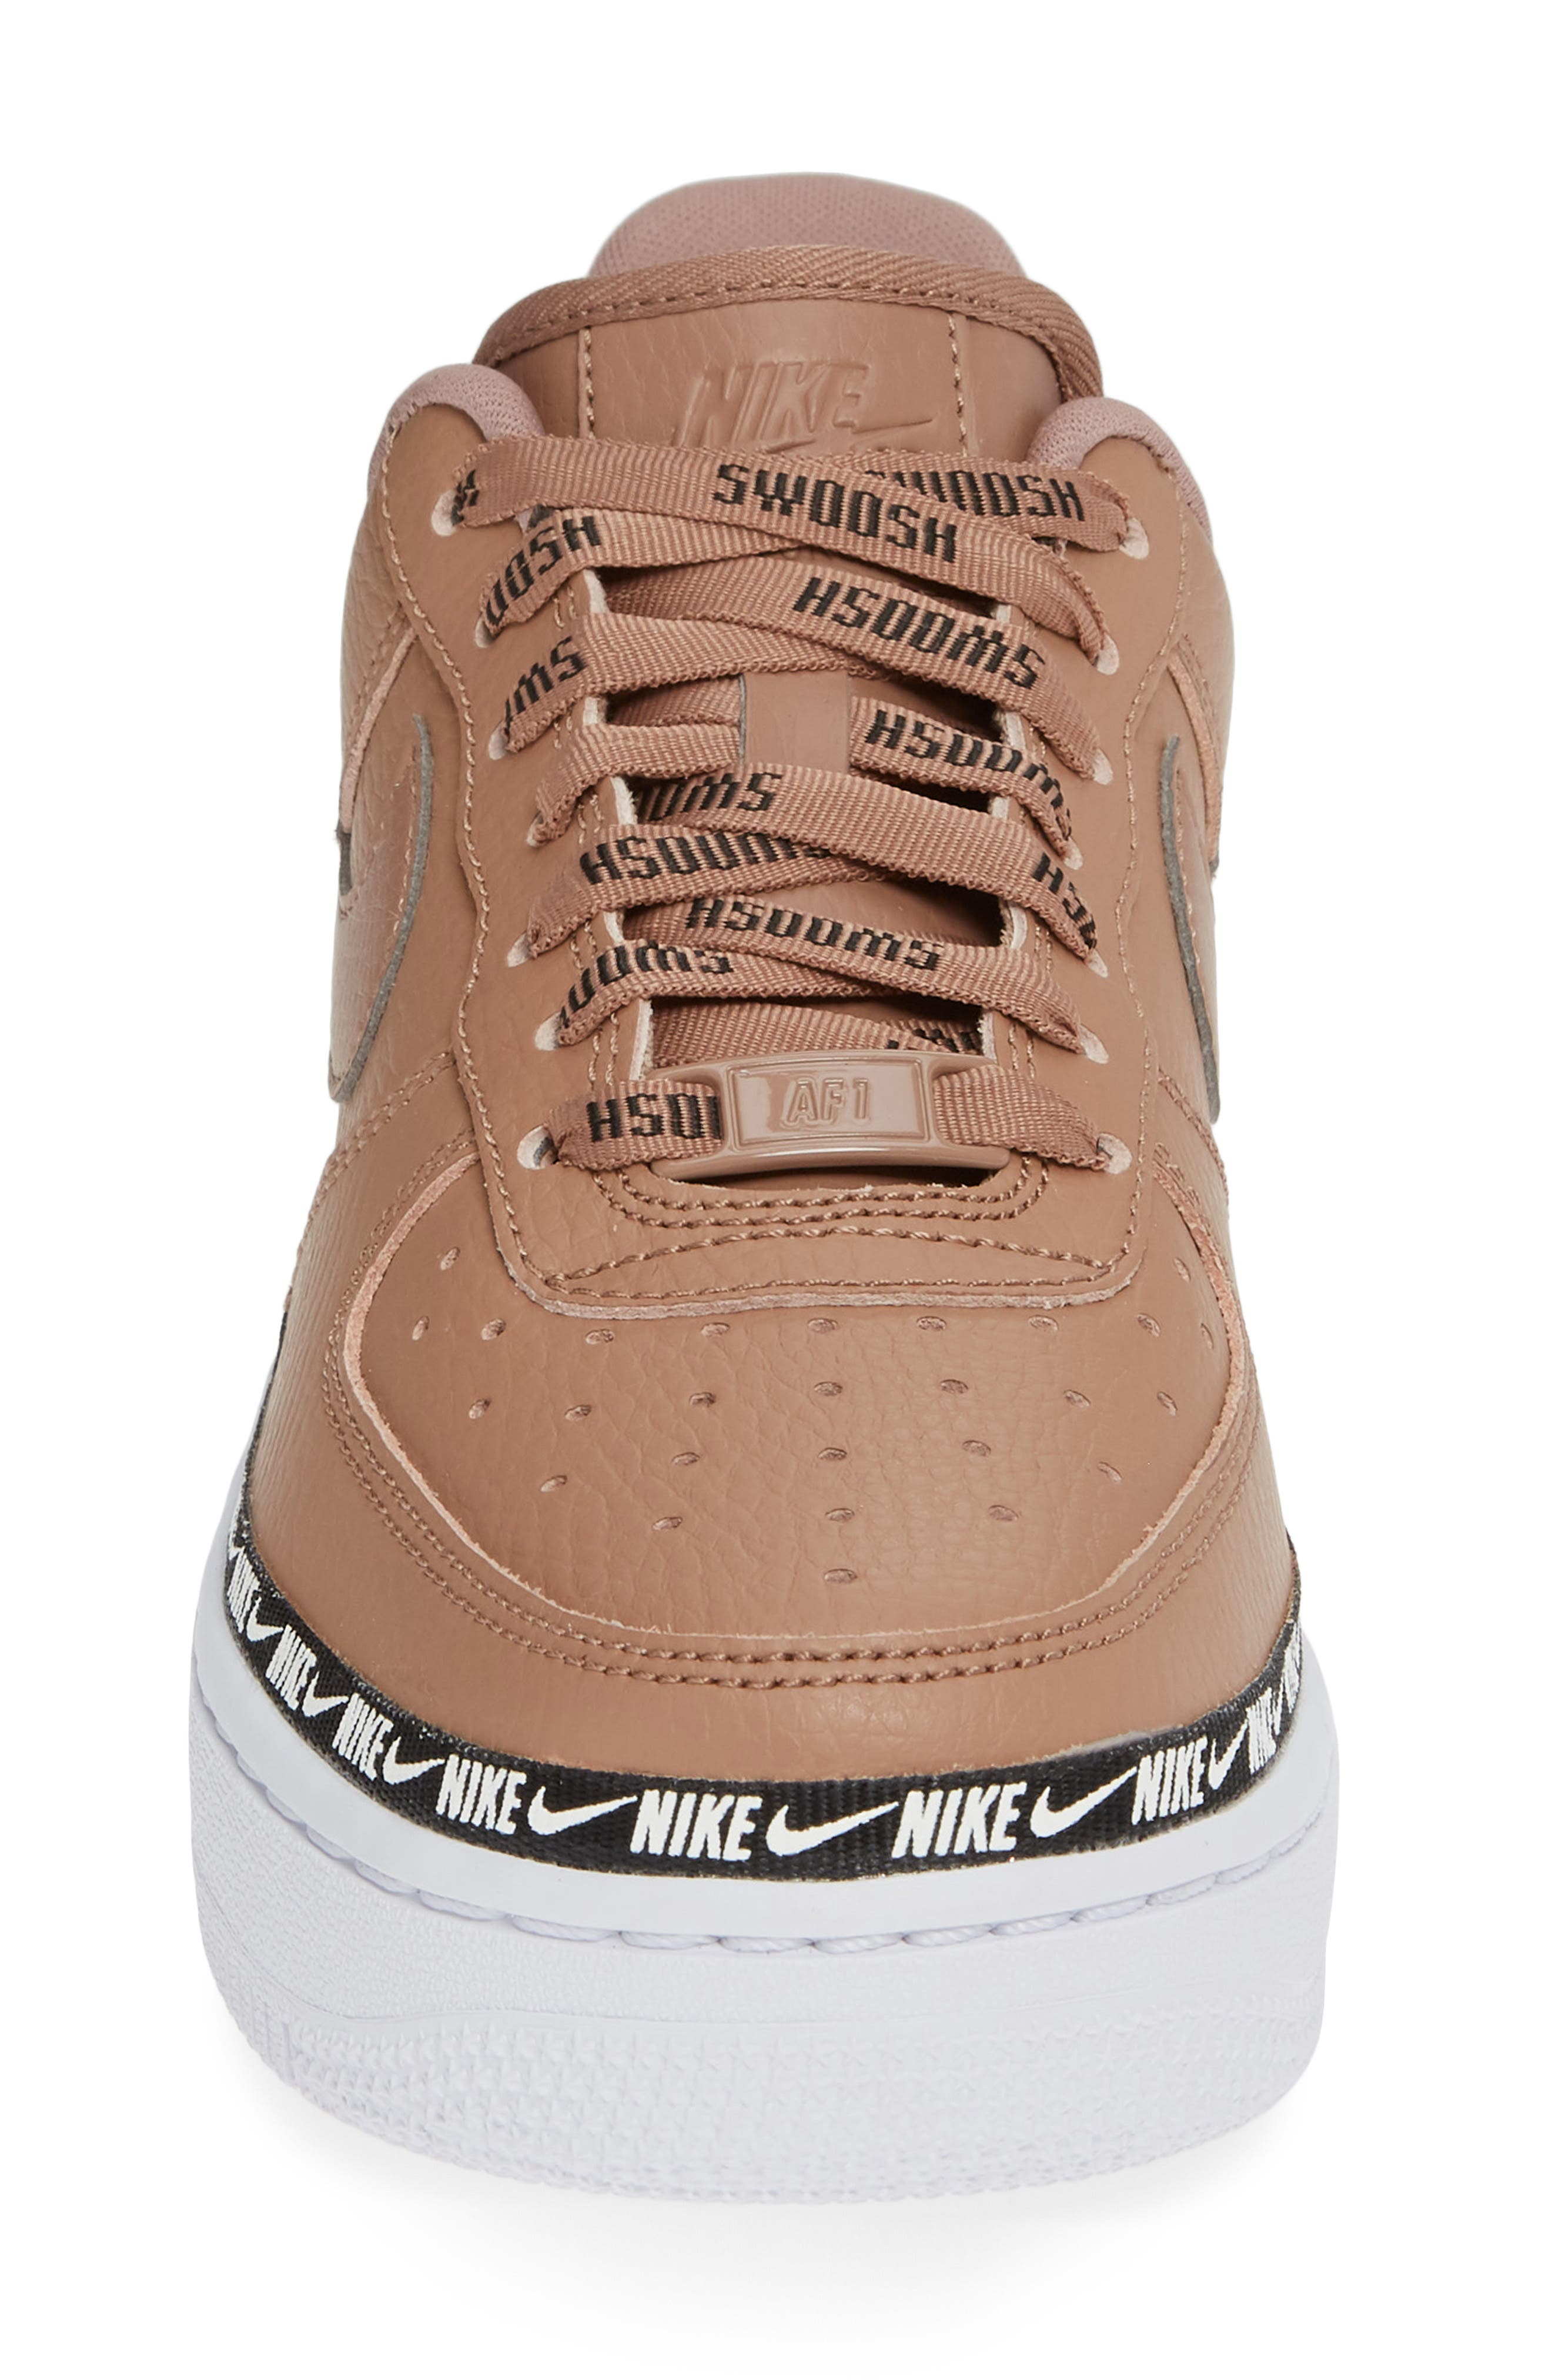 Air Force 1 '07 SE Premium Sneaker,                             Alternate thumbnail 4, color,                             DESERT DUST/ BLACK/ WHITE